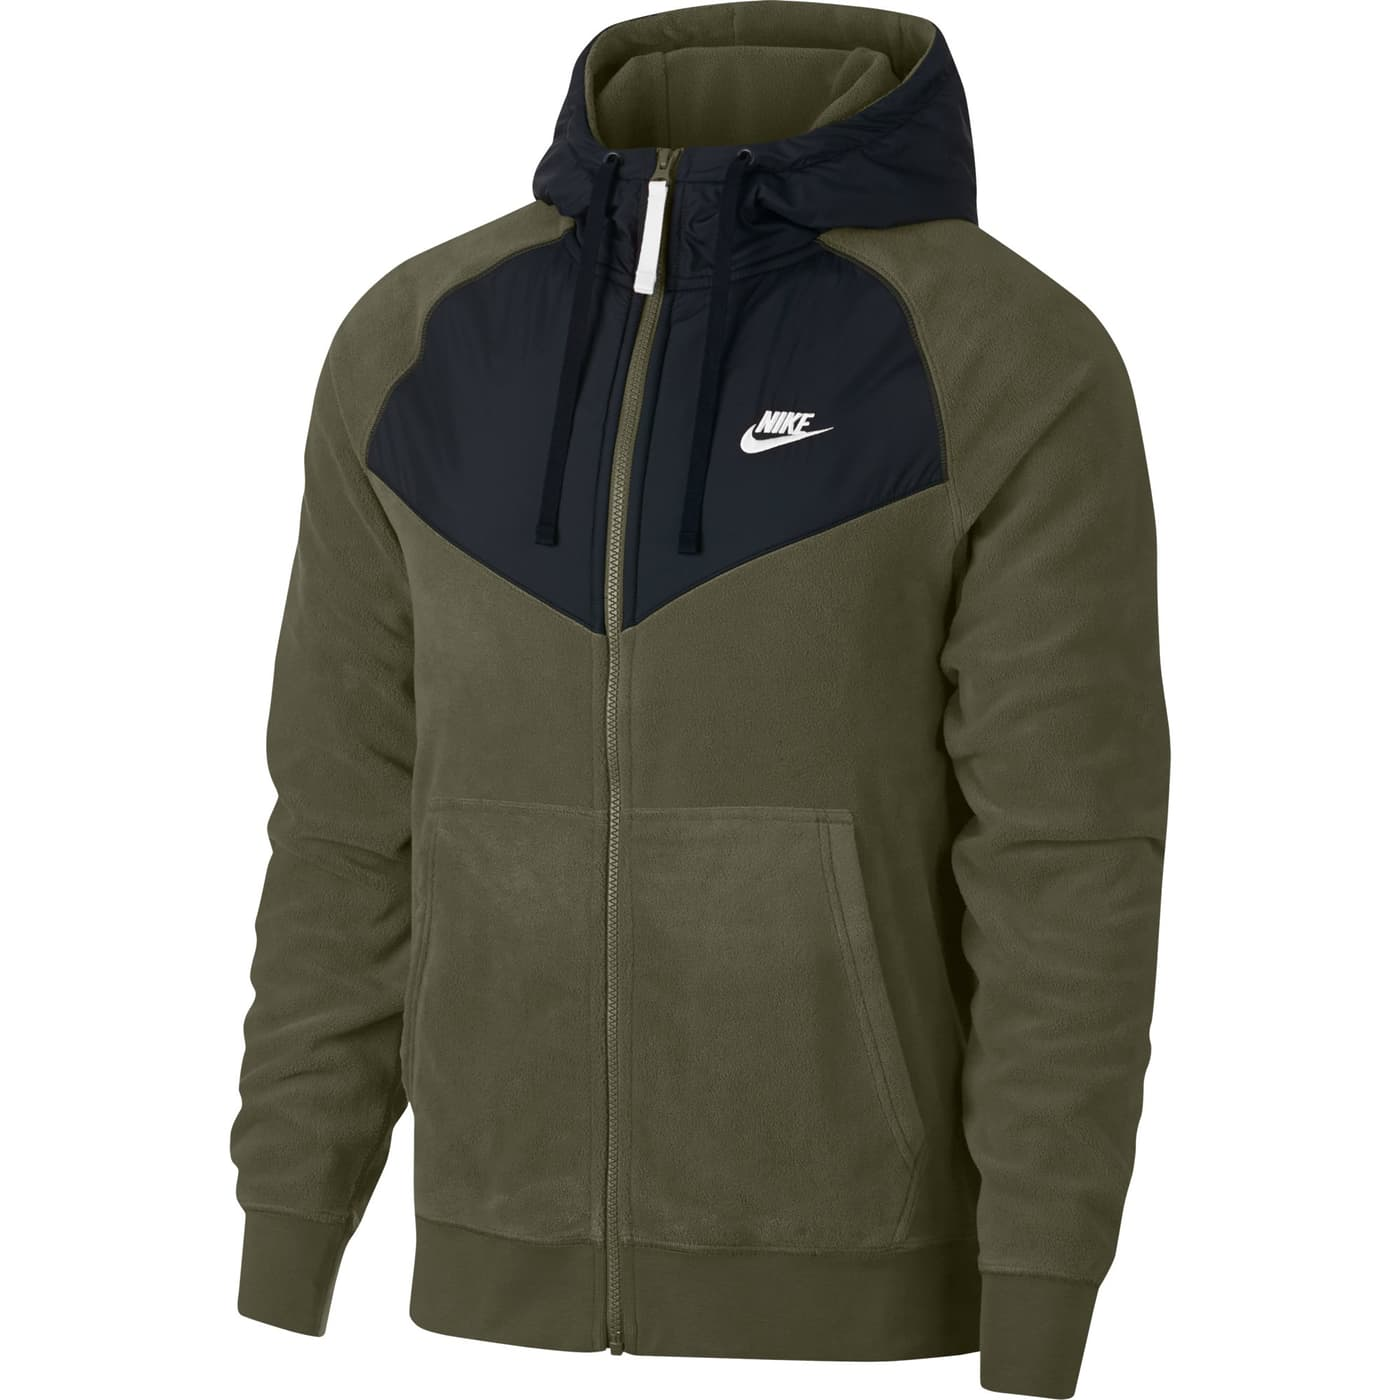 Nike Pour Capuche Hoodie Fullzip Winter Snl Men Veste Nsw Core À TwafT